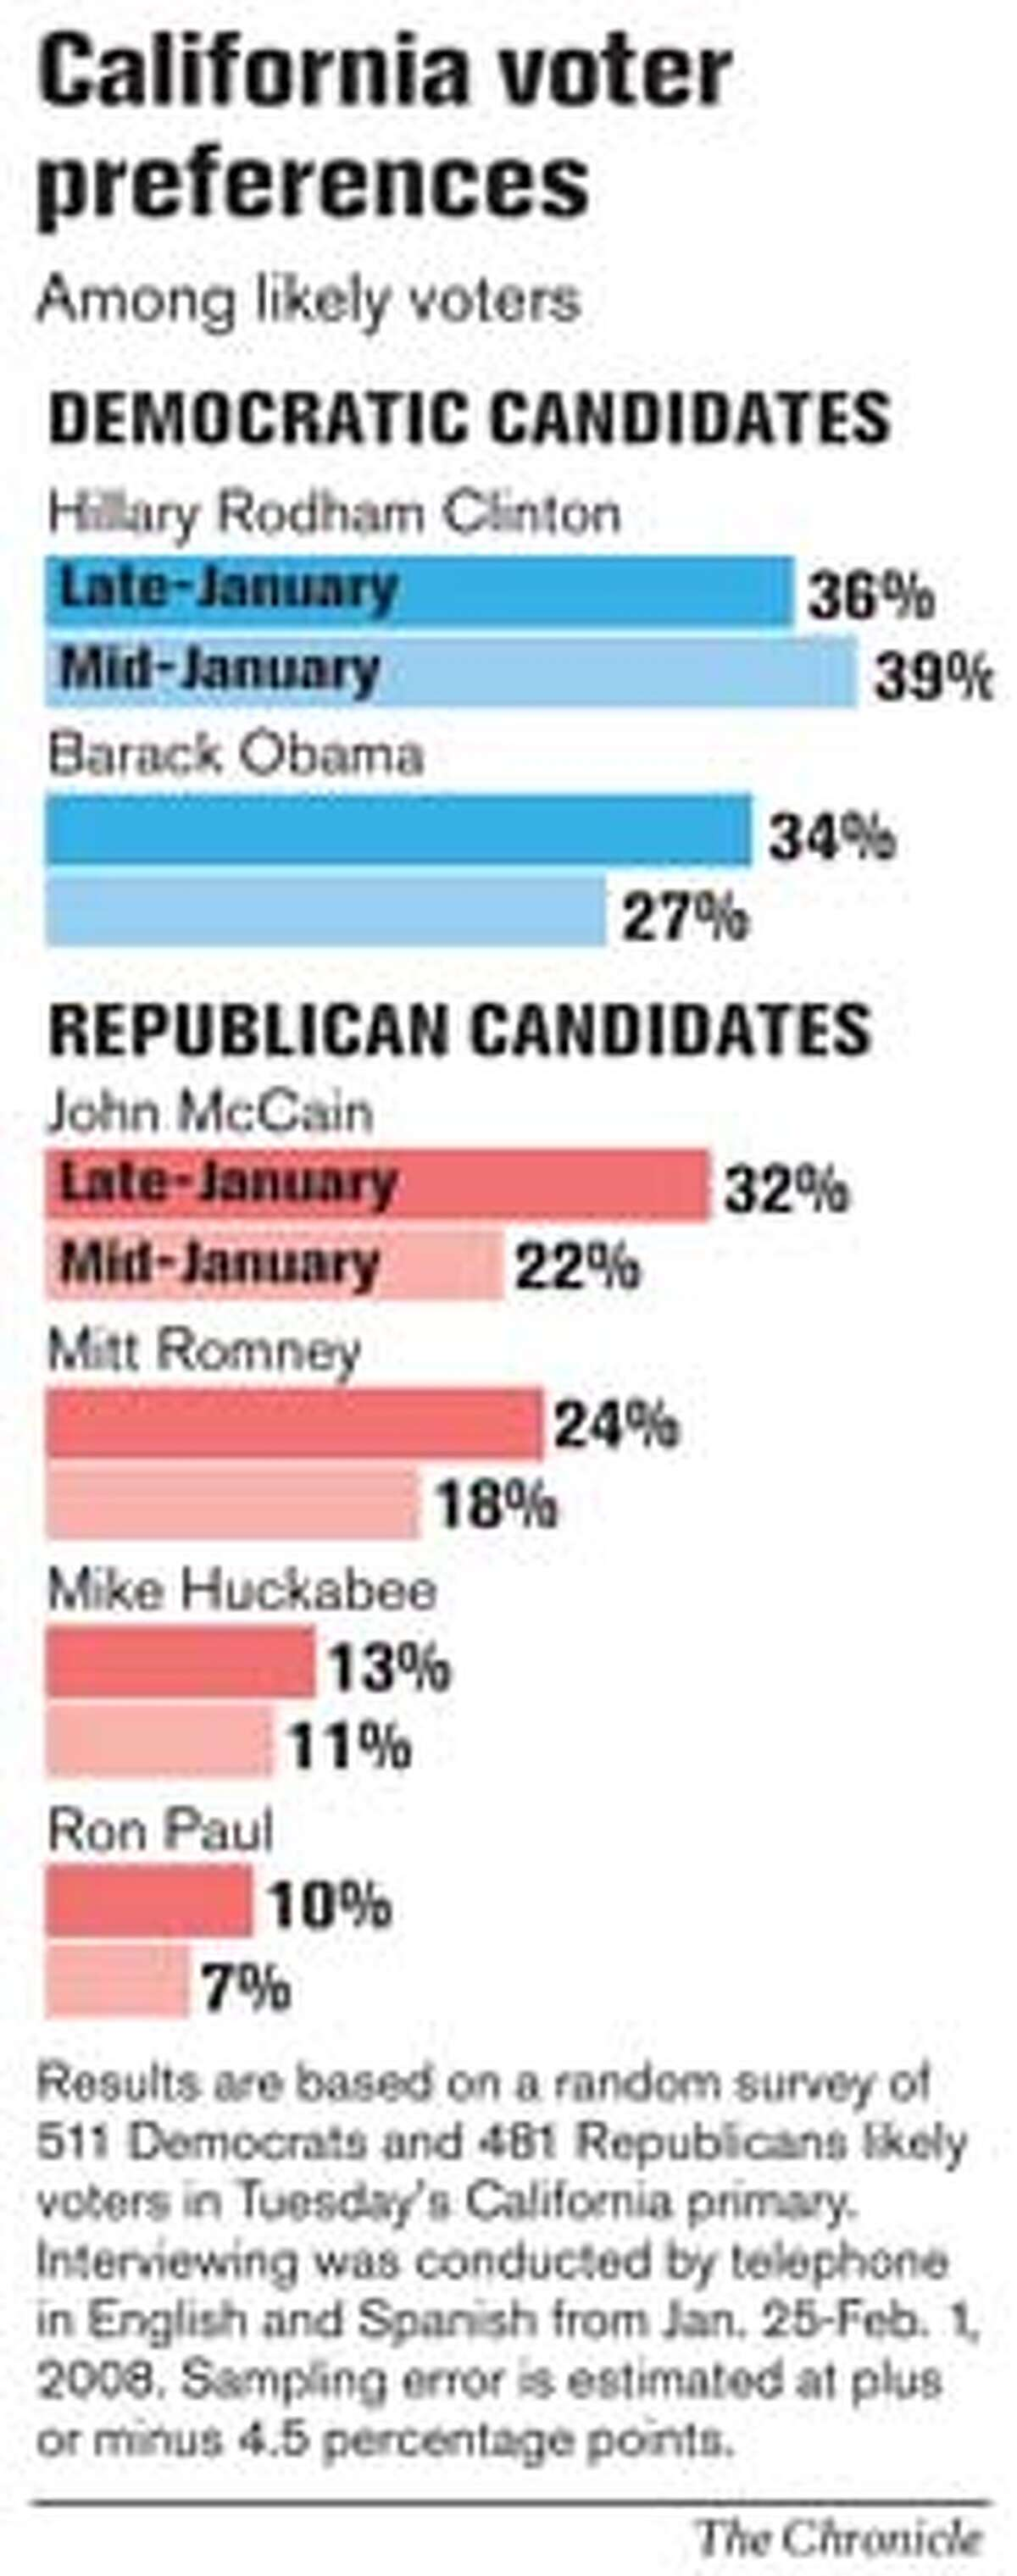 California voter preferences. Chronicle Graphic